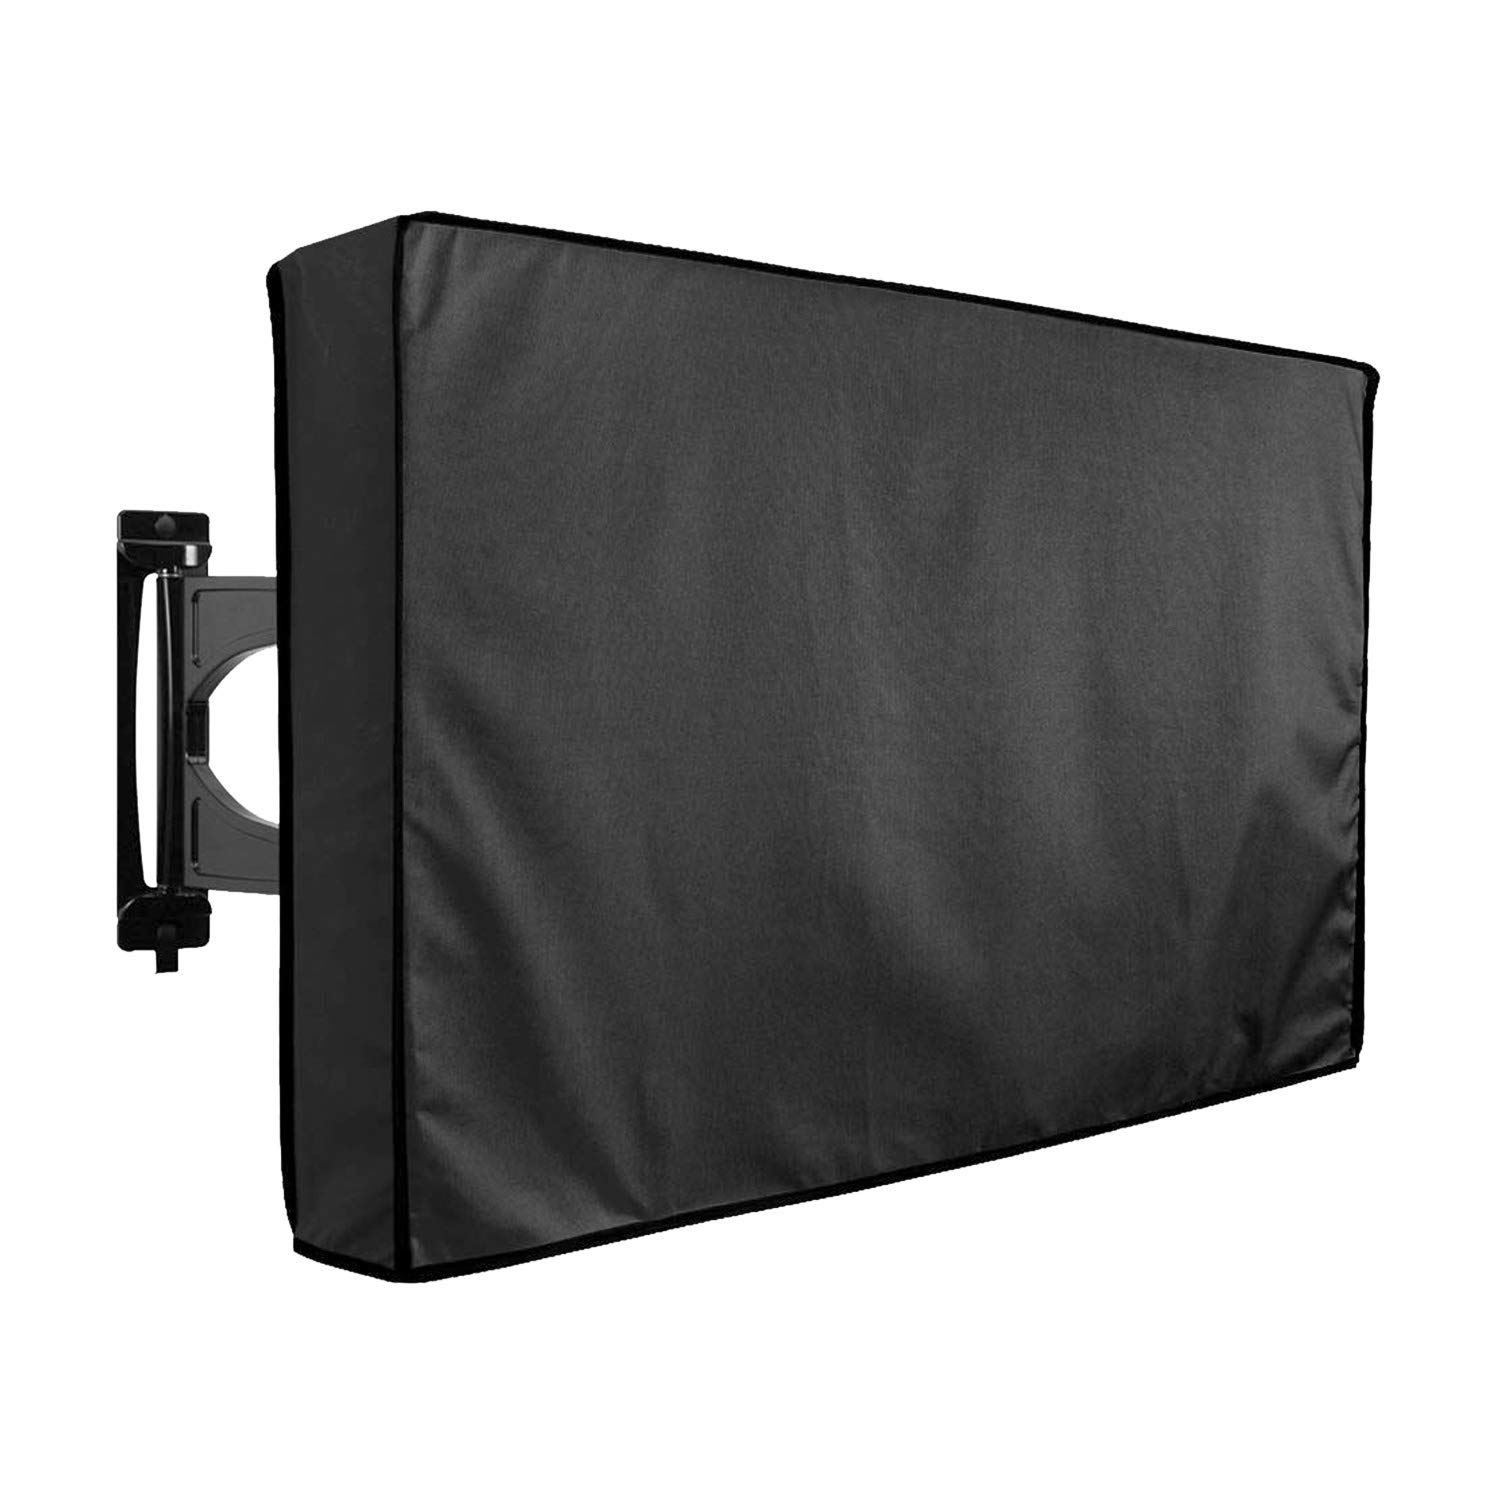 Outdoor TV Cover 52''- 58'' with Scratch Resistant Liner, Bottom Seal, Weatherproof Universal Protector LCD, LED, Plasma Television Sets, Built in Remote Controller Storage Pocket by Eichzhushp